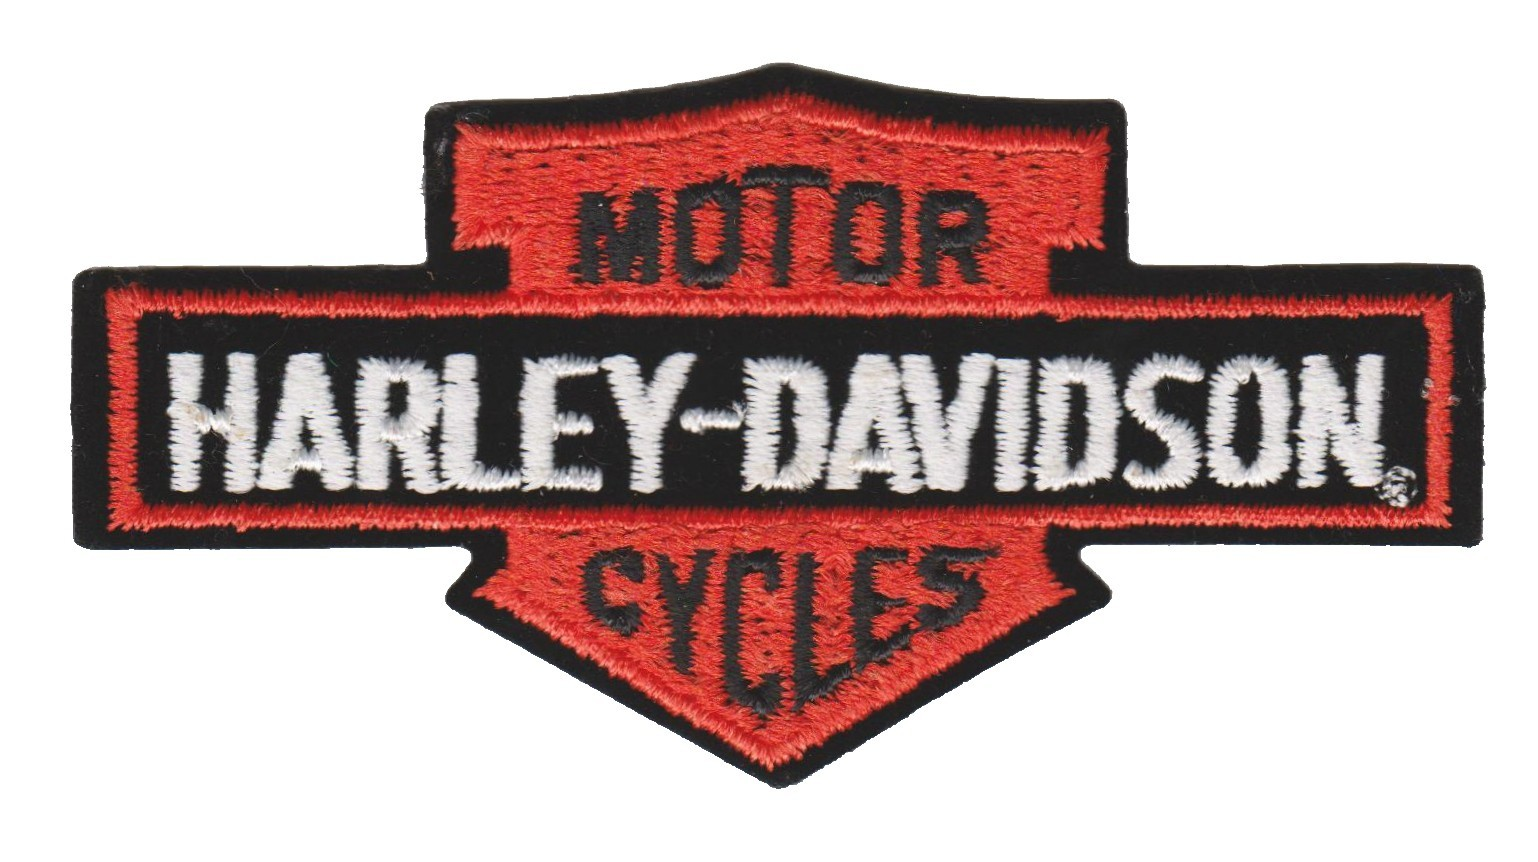 "Harley-Davidson ® Bar and Shield Harley ® Patch3 3/4 "" x 2 1/2 ""FREE SHIPPING - Product Image"